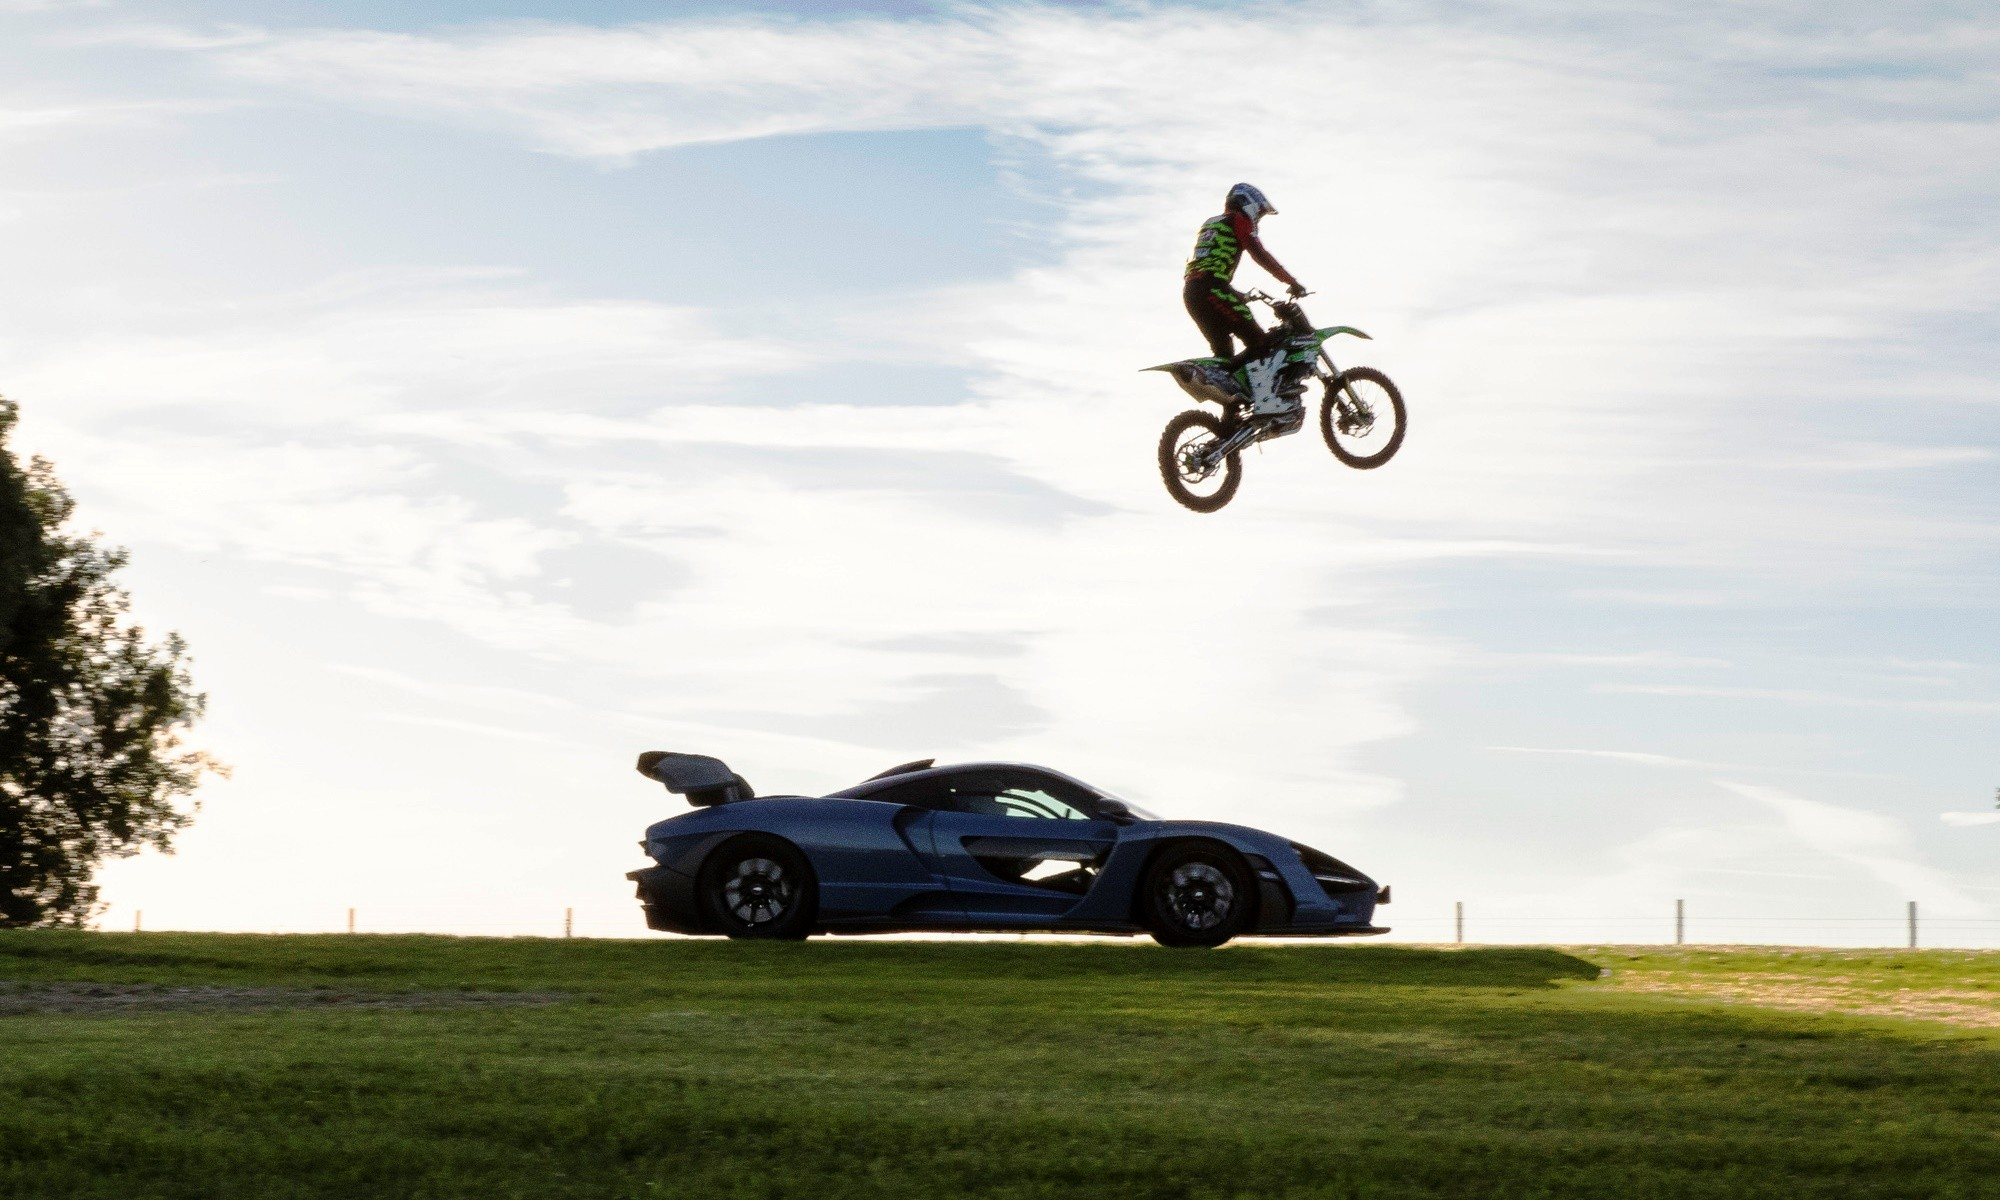 Snapshot of the McLaren Senna vs motorcross